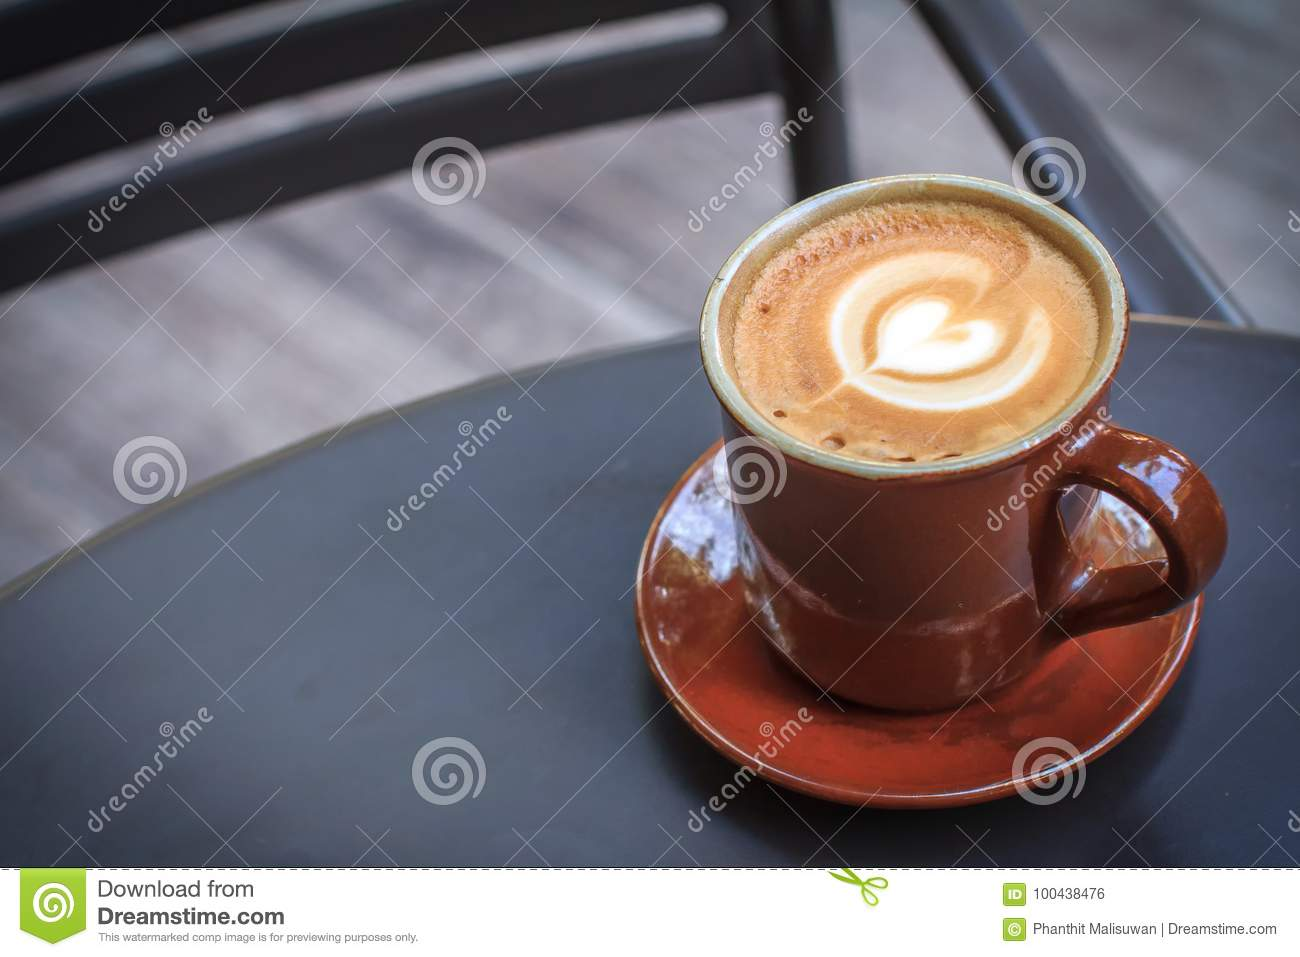 Coffee cup on black metal table in coffee shop with wooden floor background.